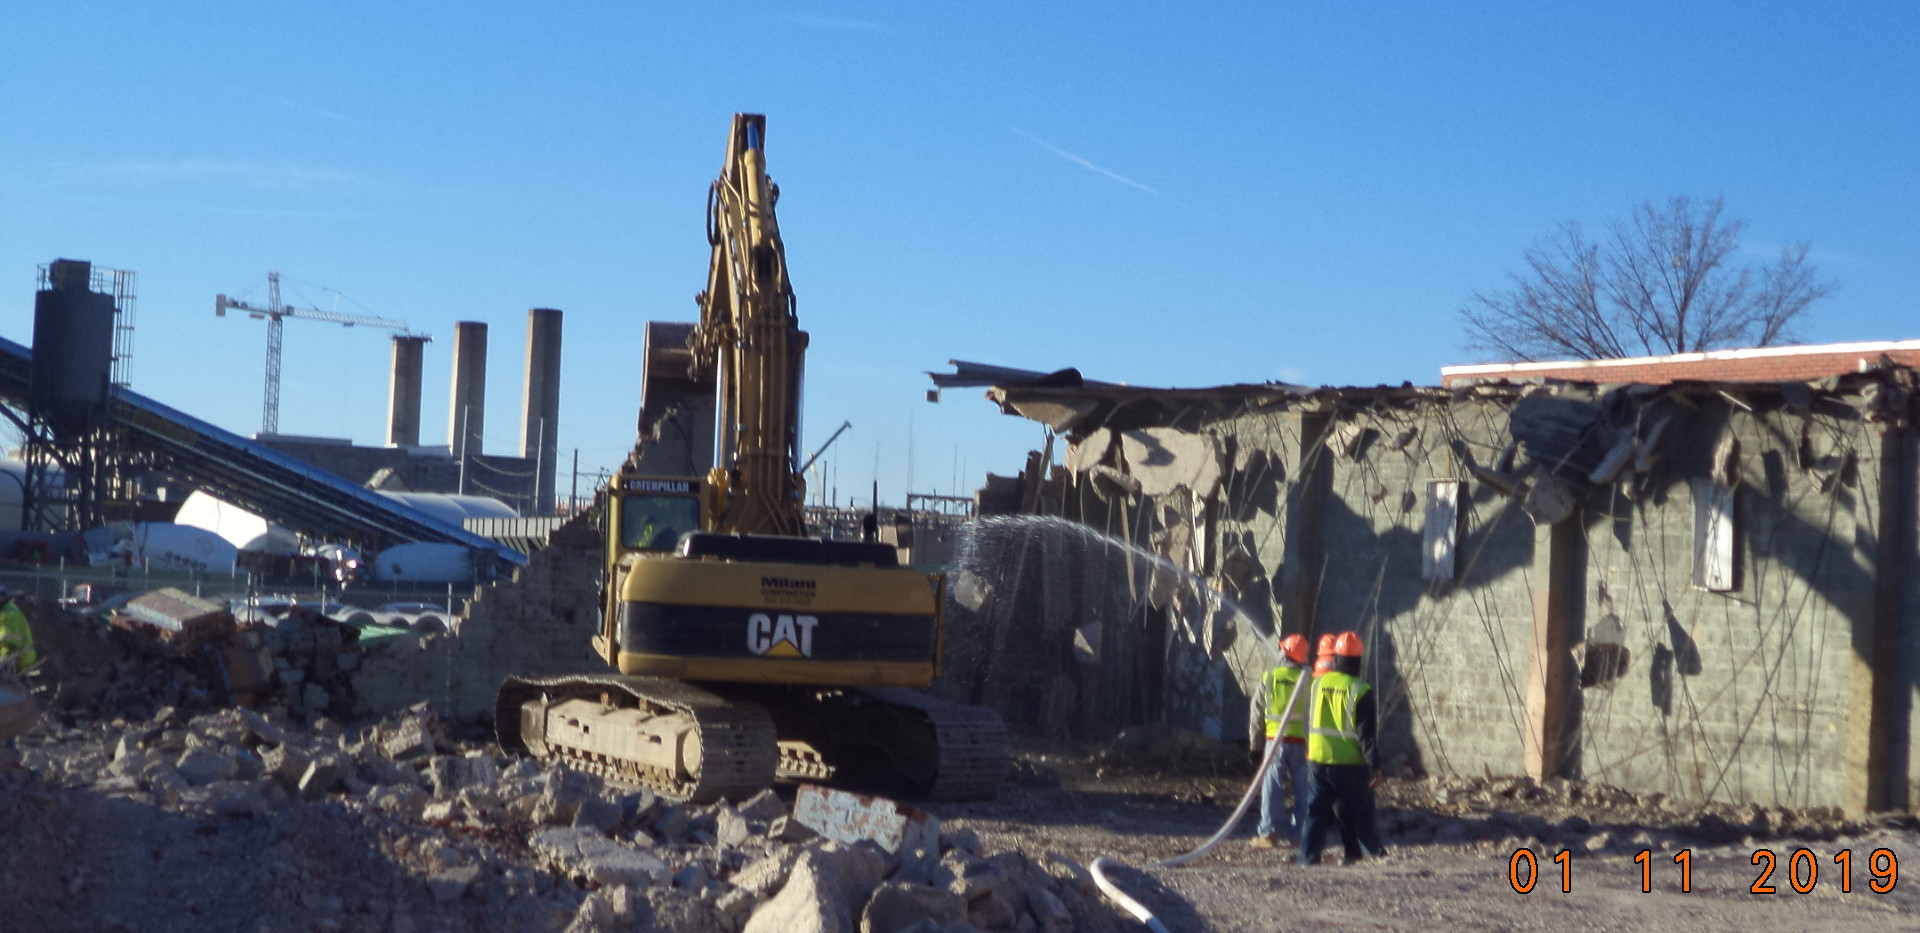 Demolition building using water hose to keep wet during demolition to prevent any dust particles from becoming airborne